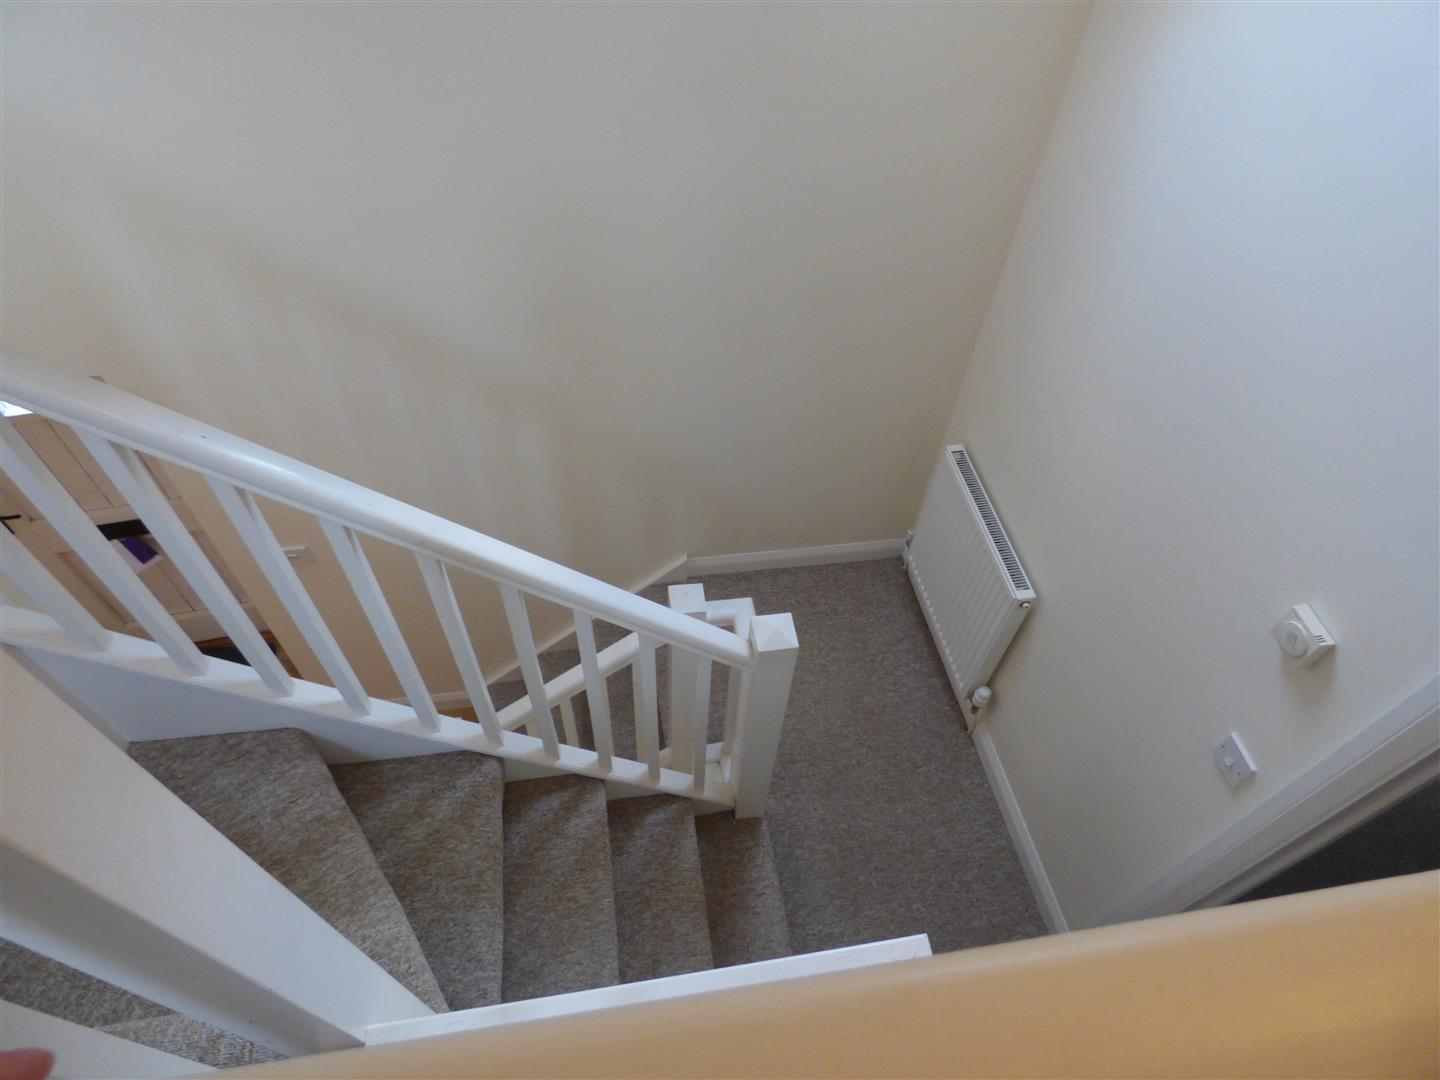 Stairs to 3rd floor landing and bedroom